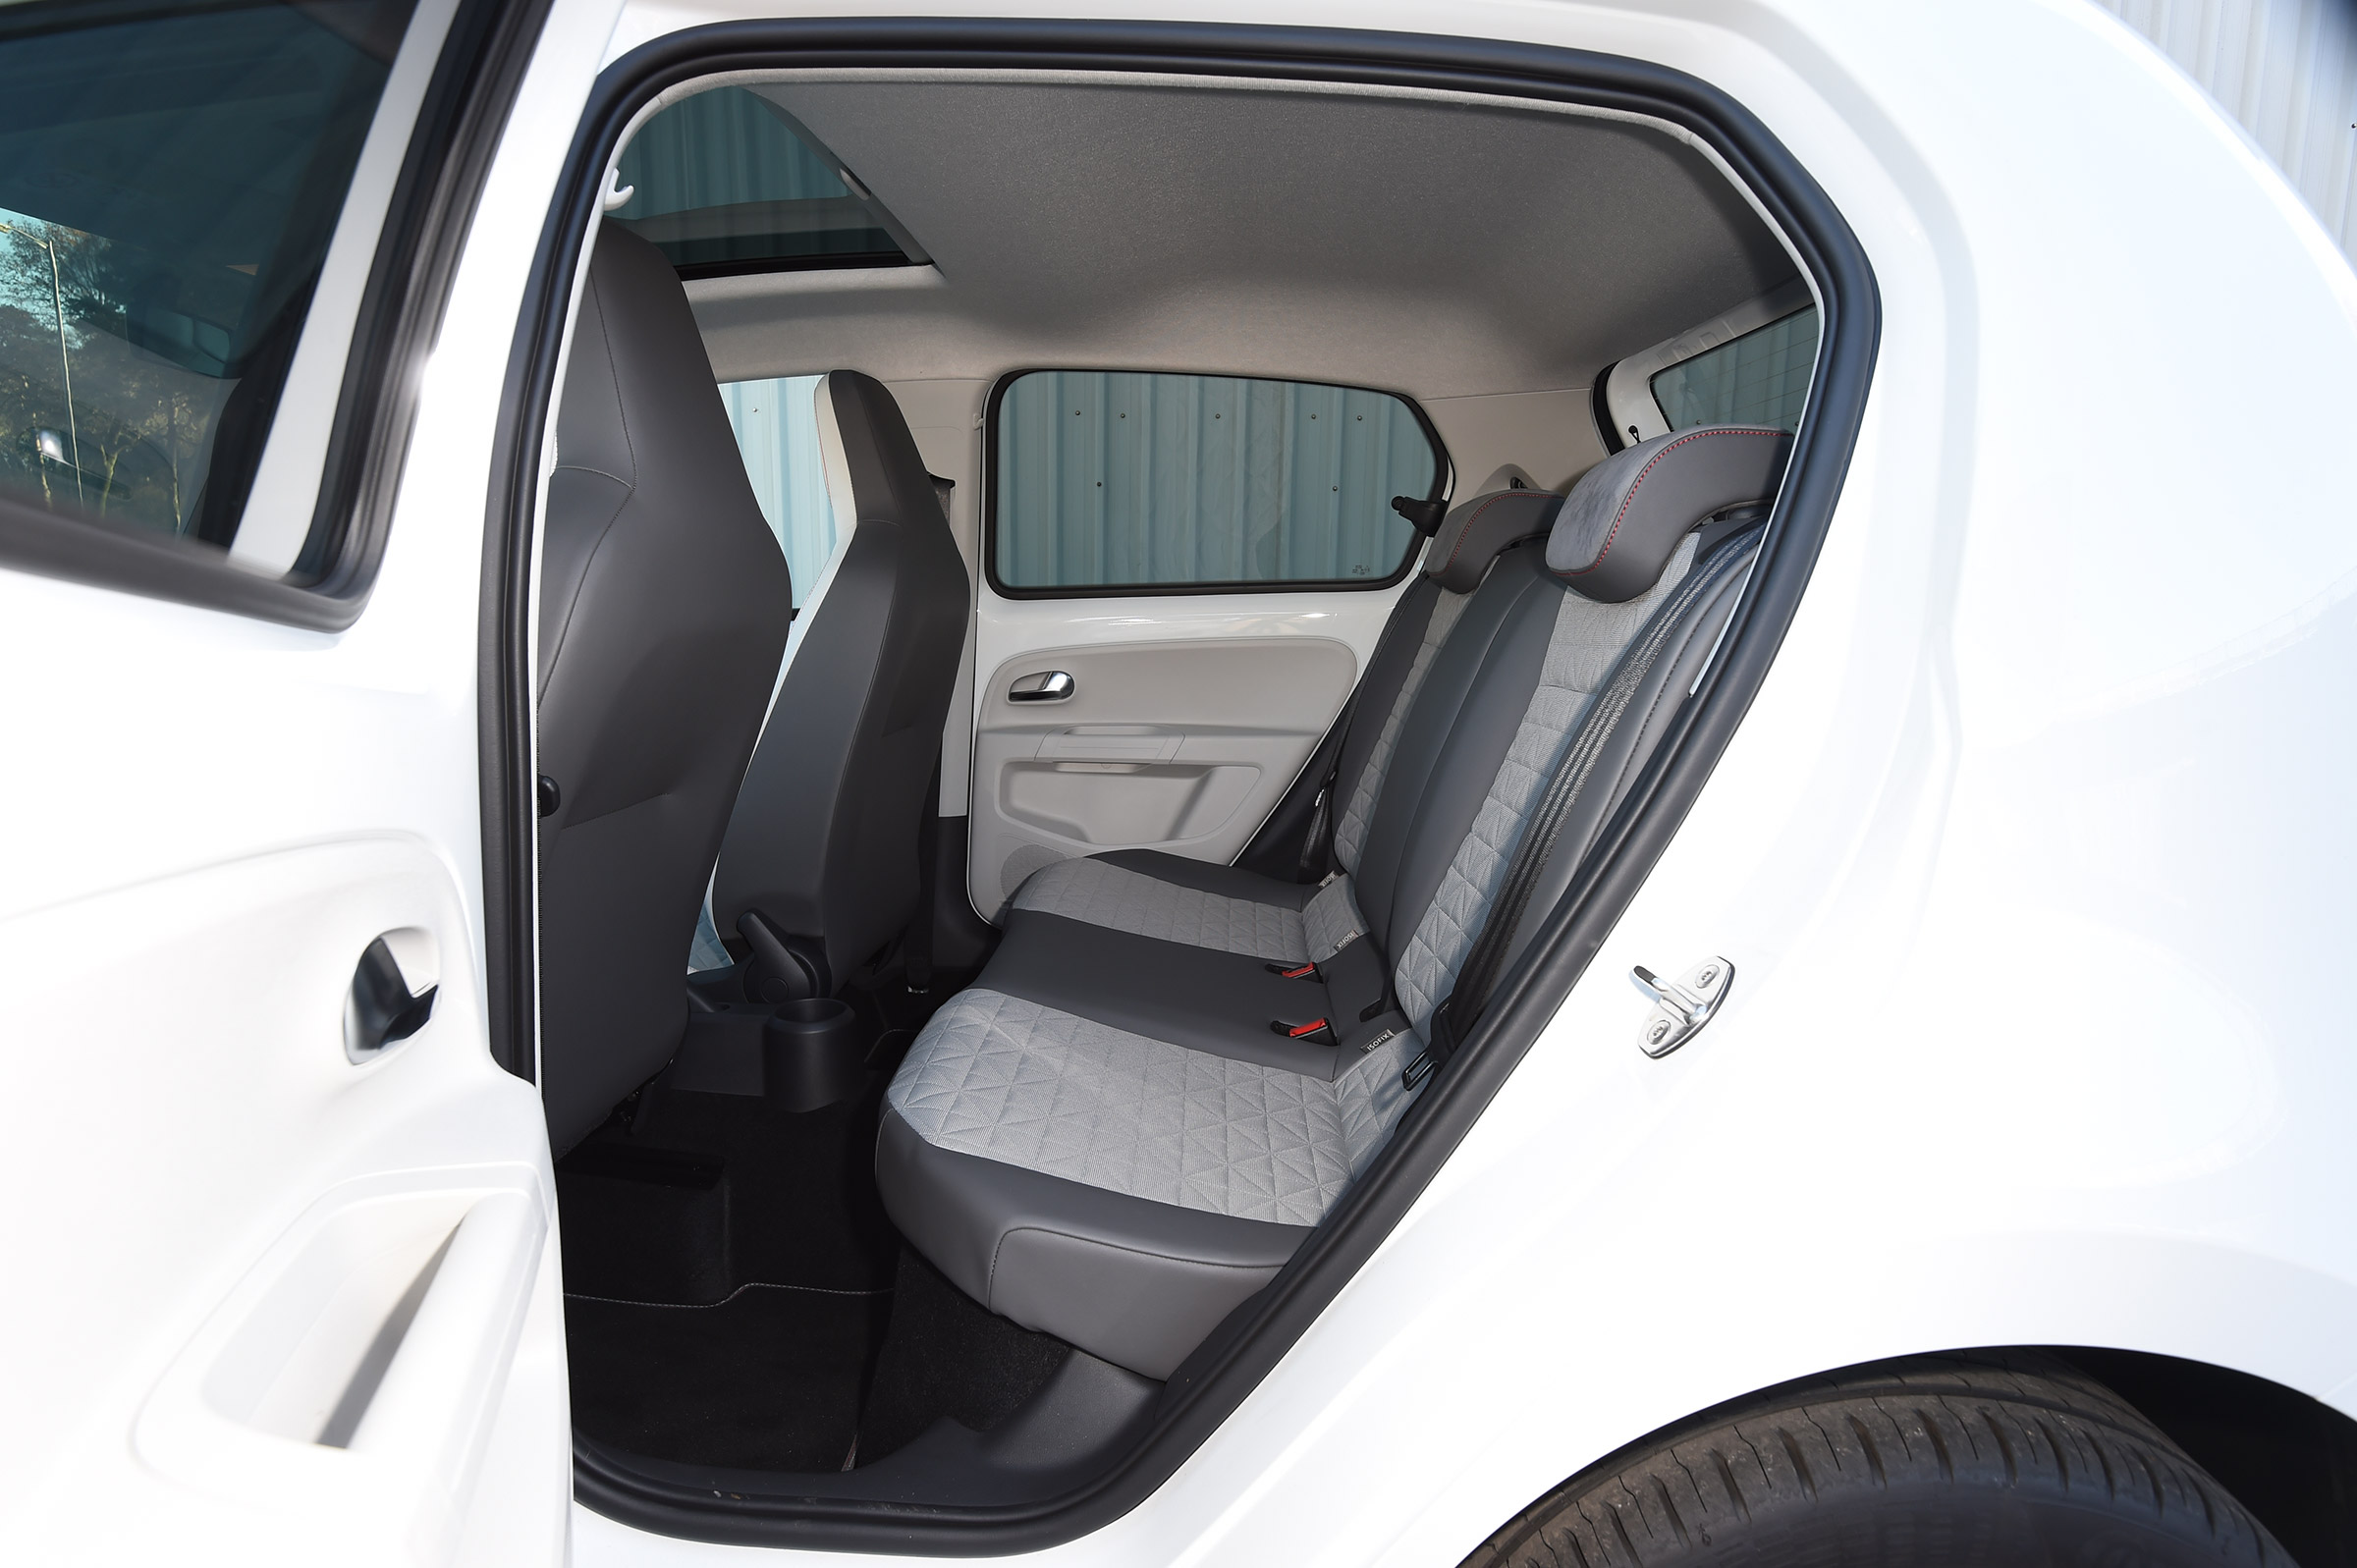 2017 Volkswagen Up Interior Seats Rear (Photo 8 of 15)